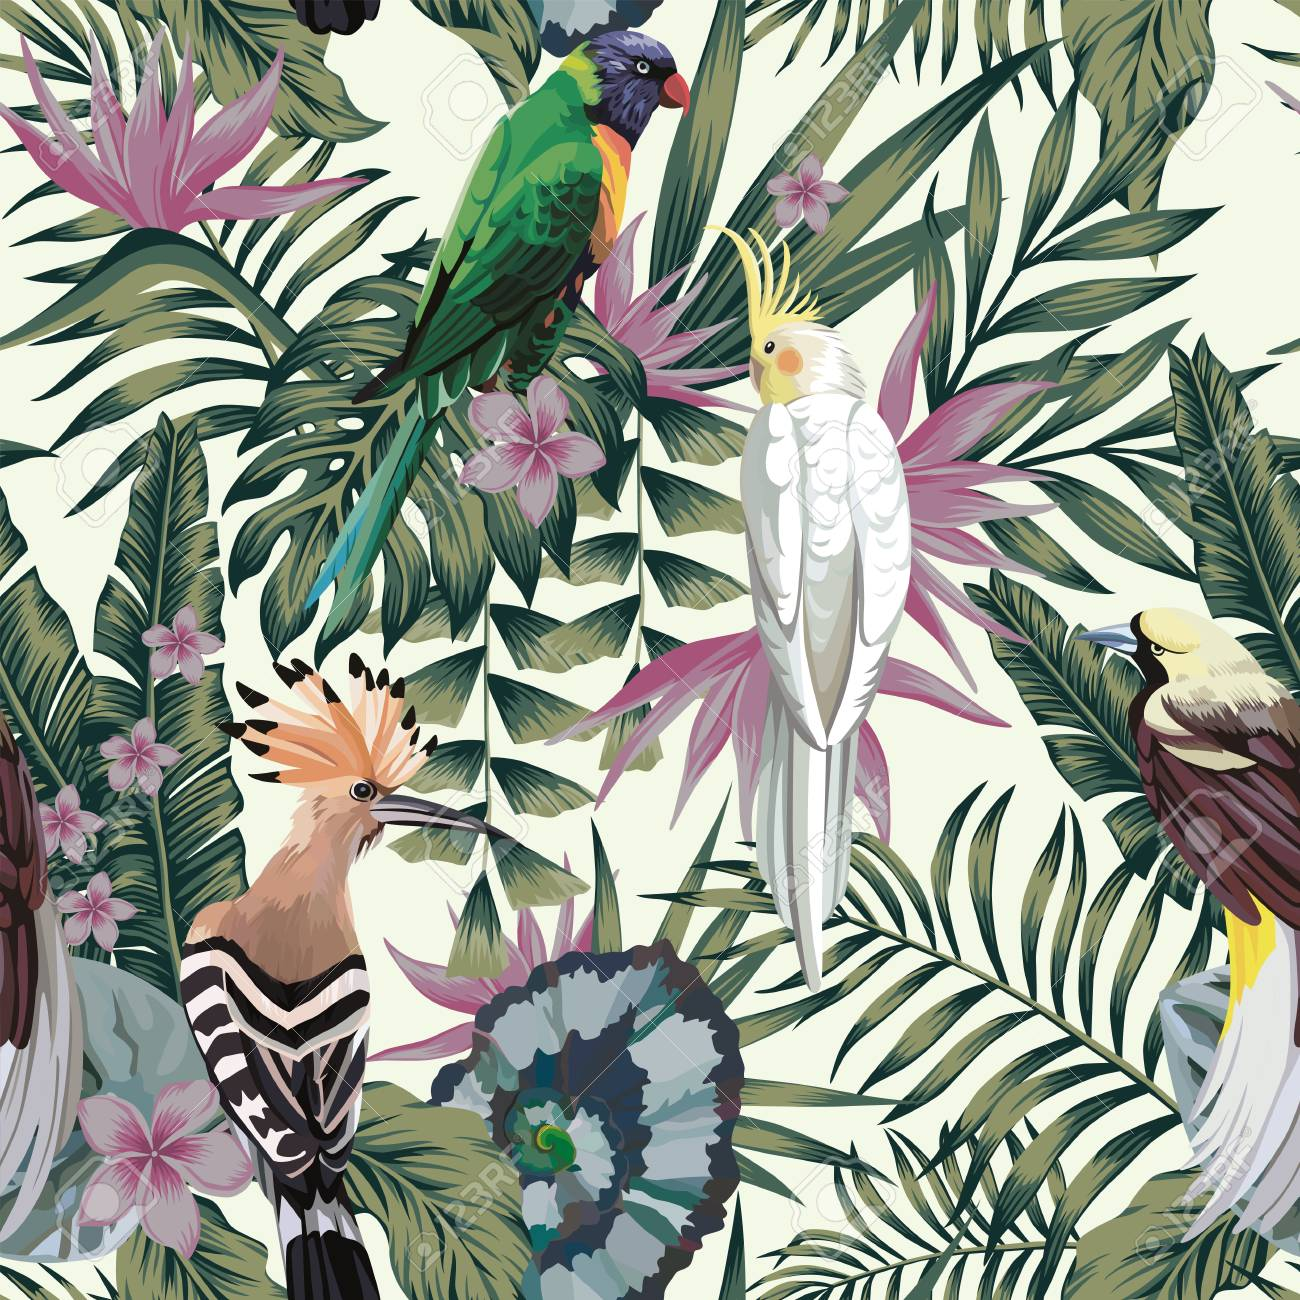 Tropical birds parrot, exotic jungle plants leaves flowers abstract pastel color seamless white background. - 98671809